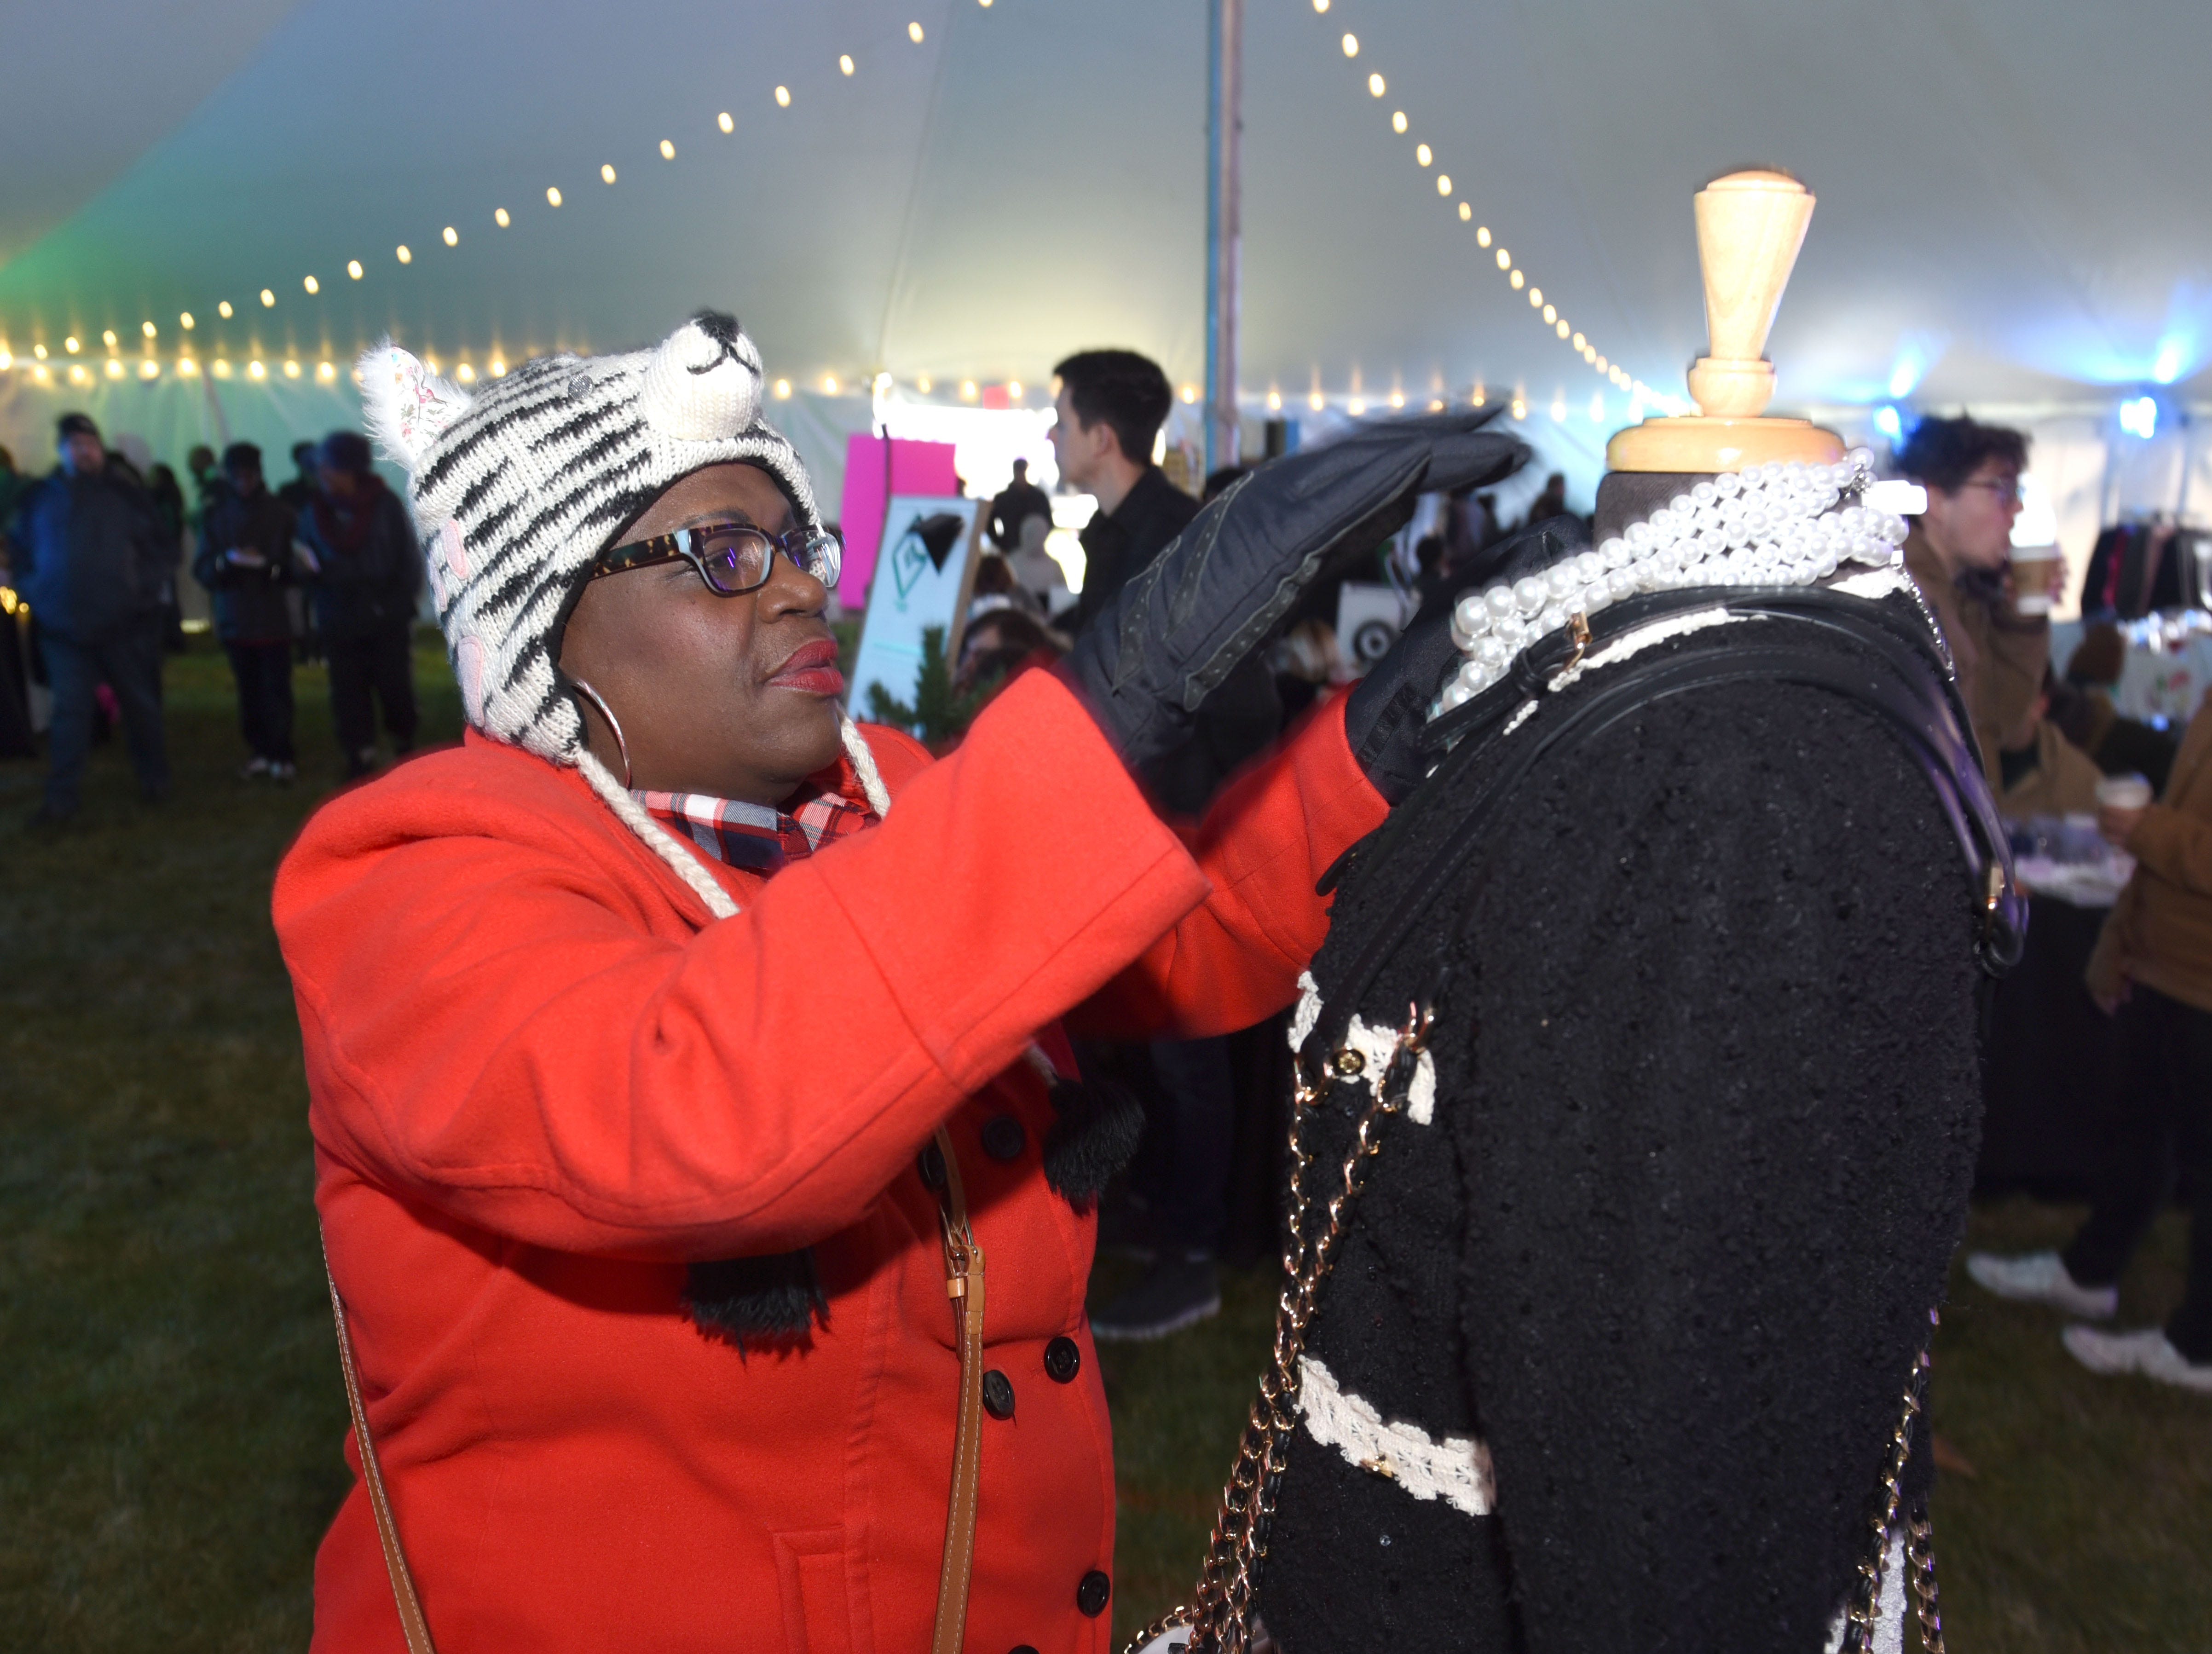 JeDonna Dinges, owner of Margaux & Max,  shows her collection of women's clothes, handbags, shoes, and accessories at the Winter Art and Retail Market during Noel Night events.